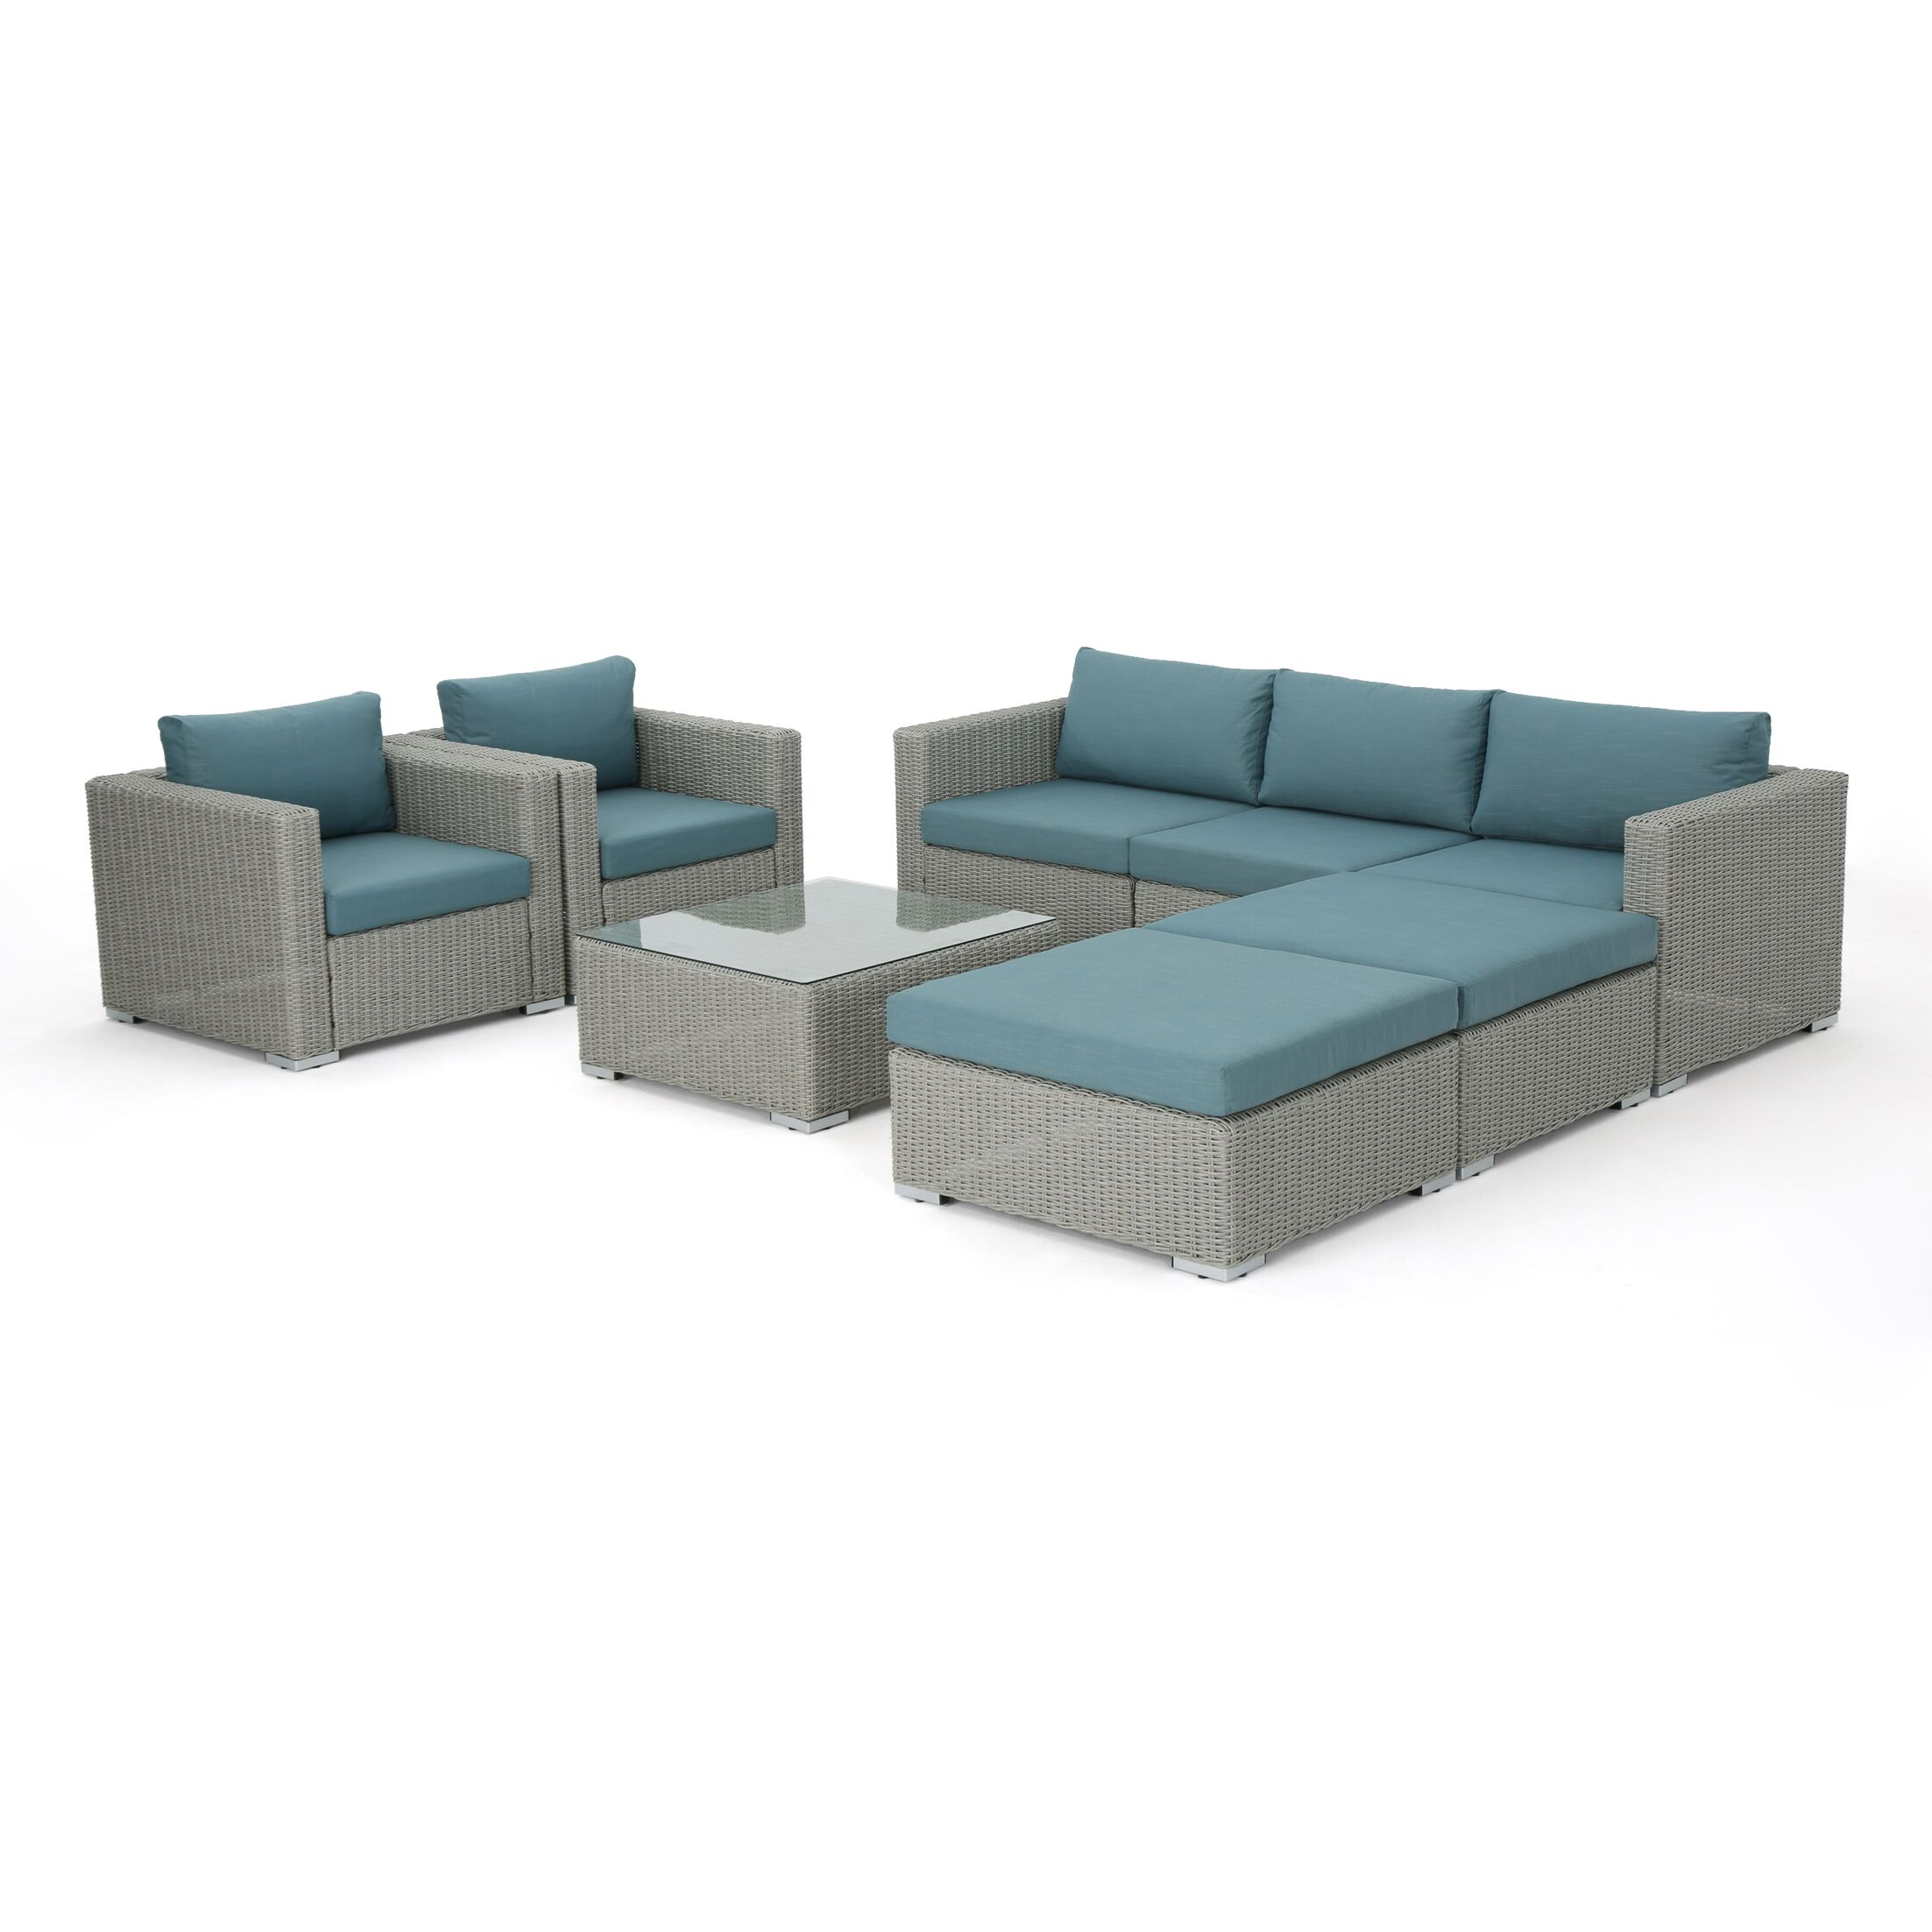 Cullum 8 Piece Sectional Set with Cushions Cushion Color: Teal